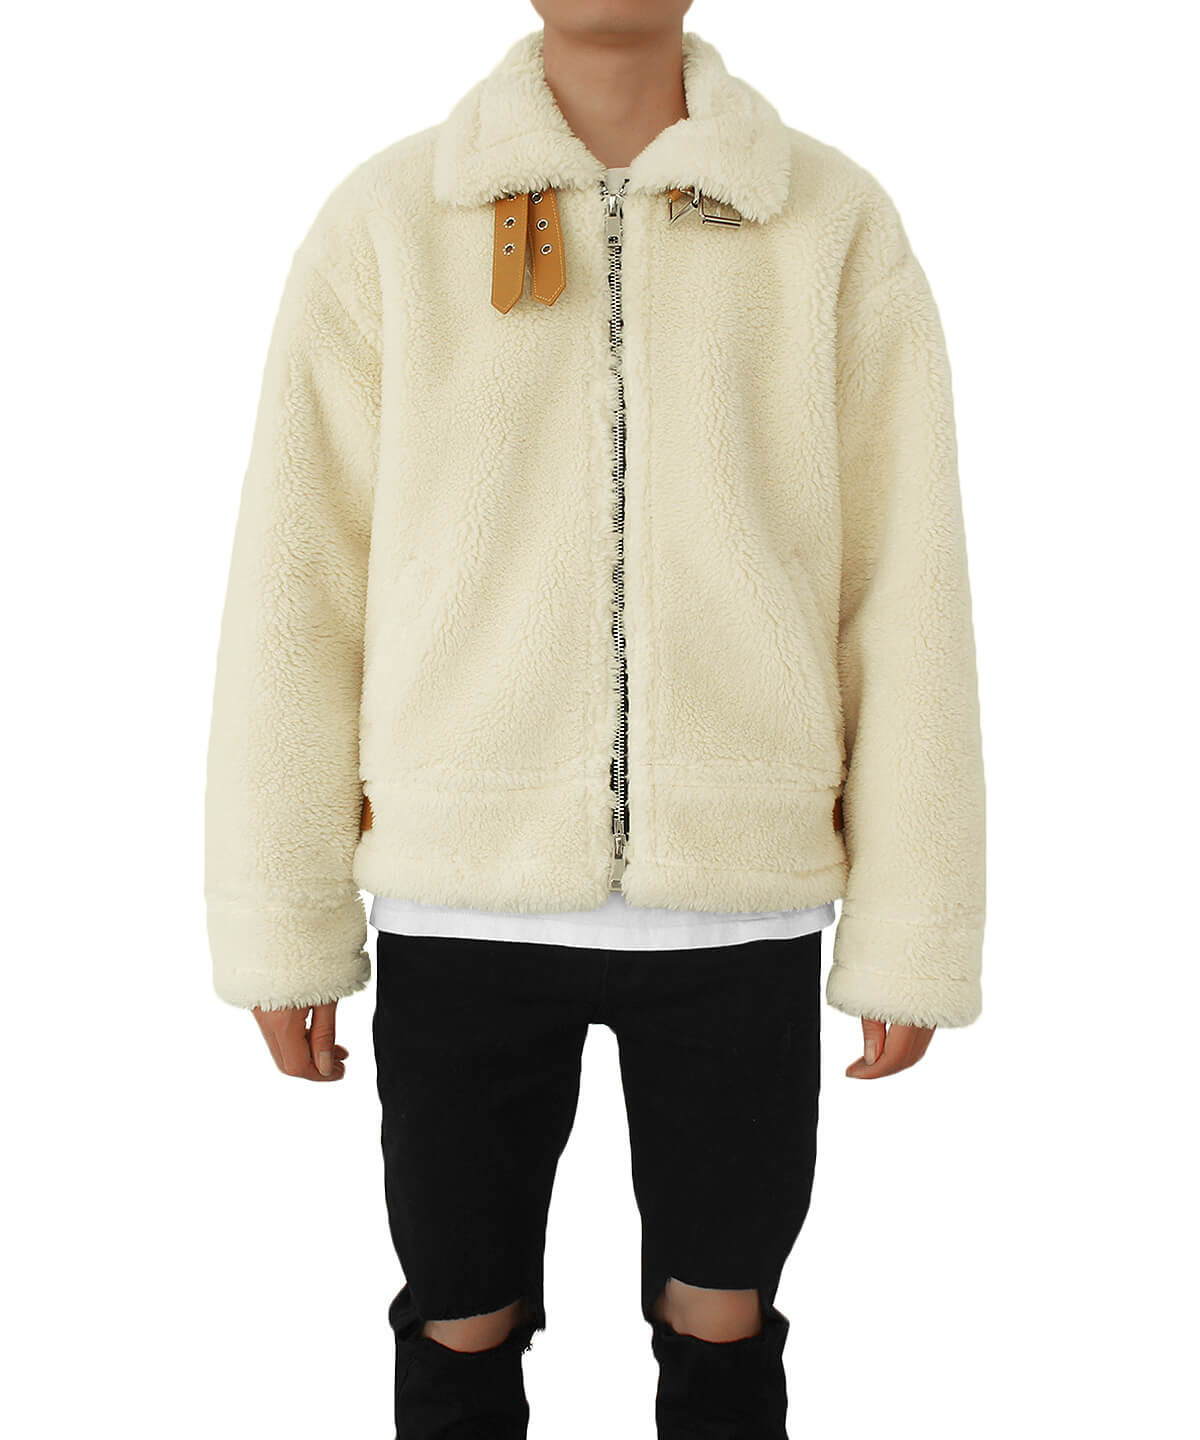 Oversized Shearling Jacket V2 - Natural